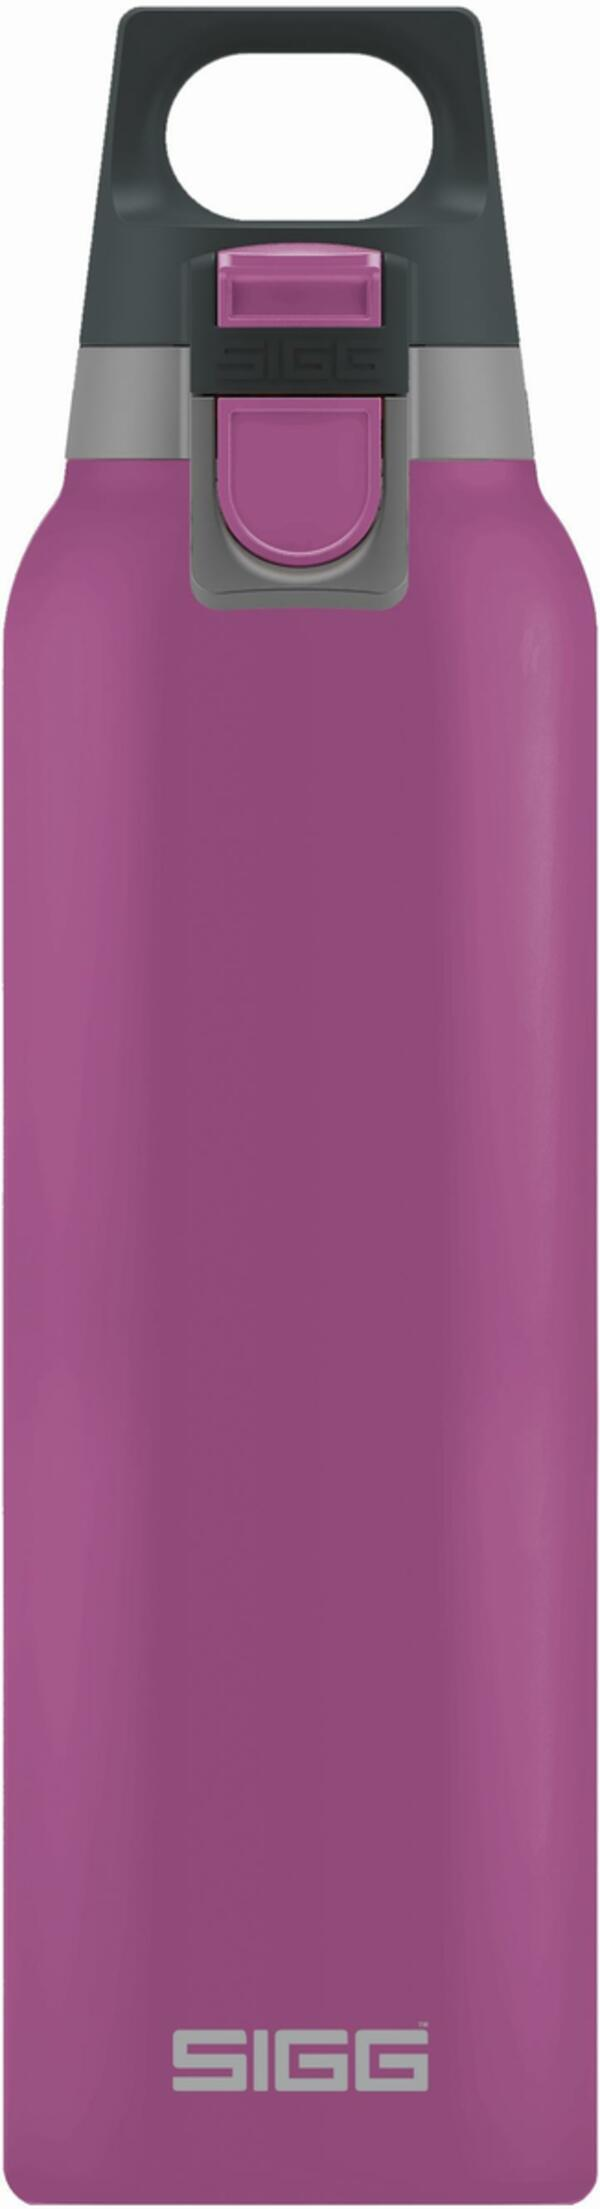 SIGG Trinkflasche Hot & Cold One Berry 0.5l